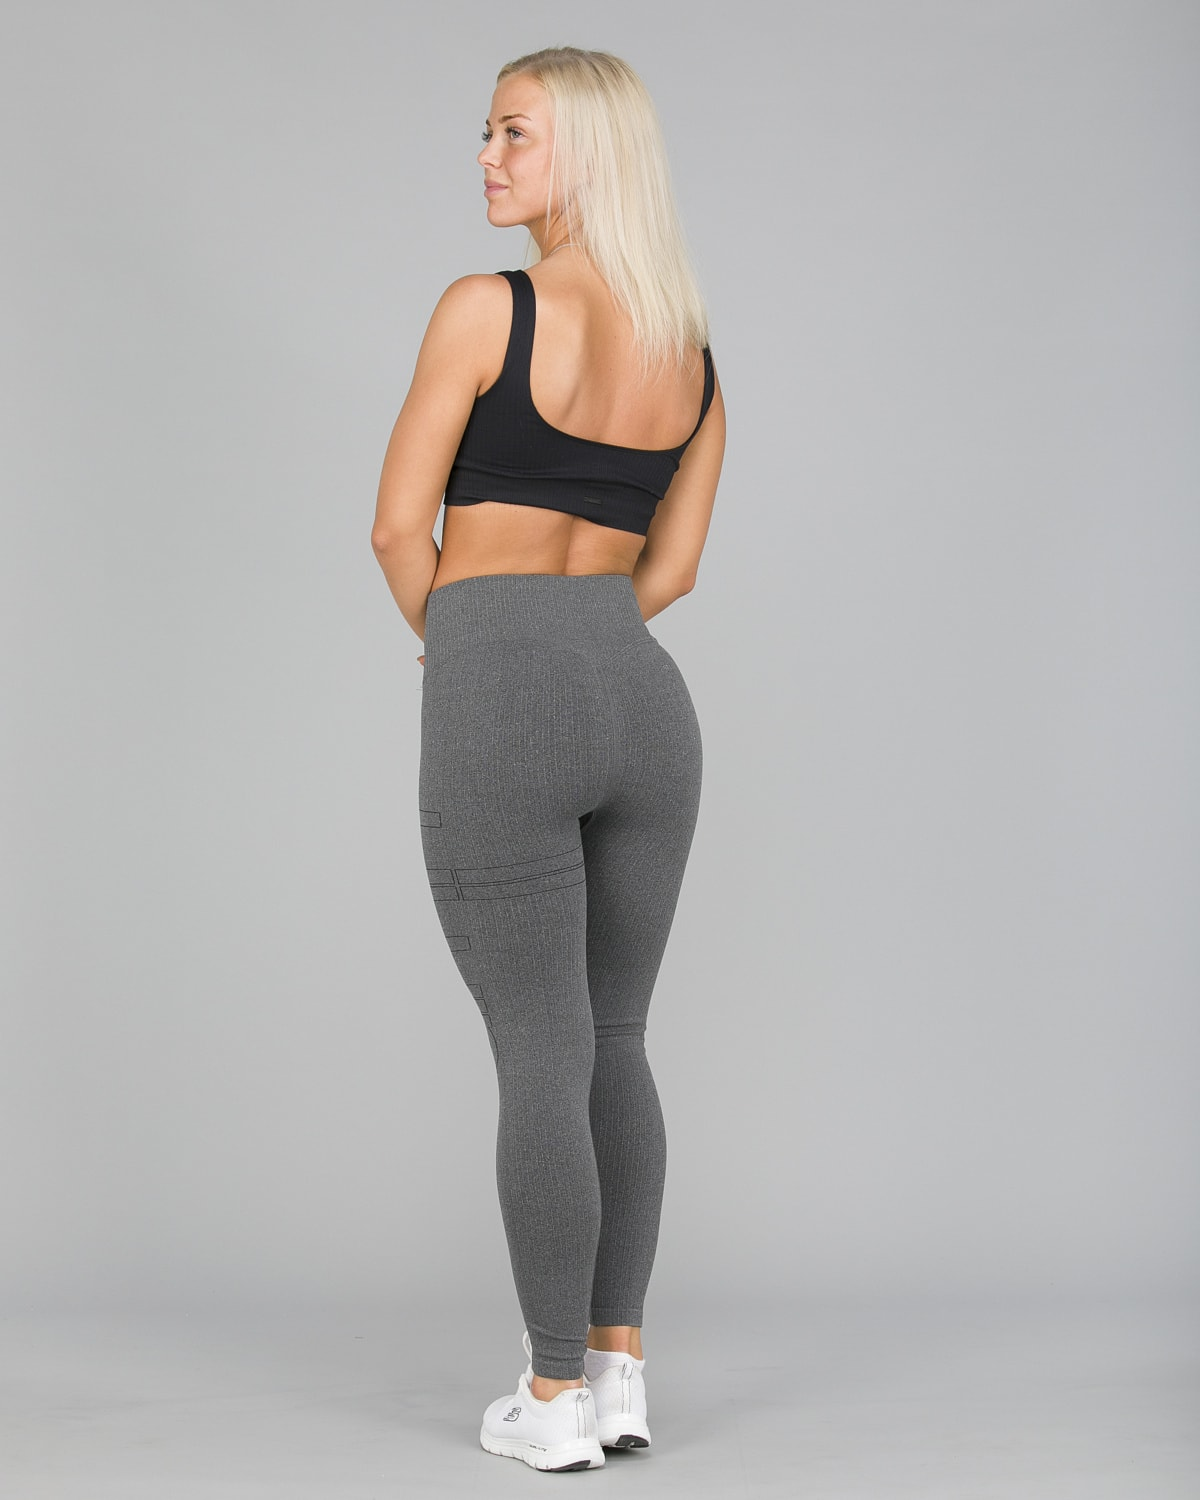 Aim'n Grey Ribbed Seamless Tights8